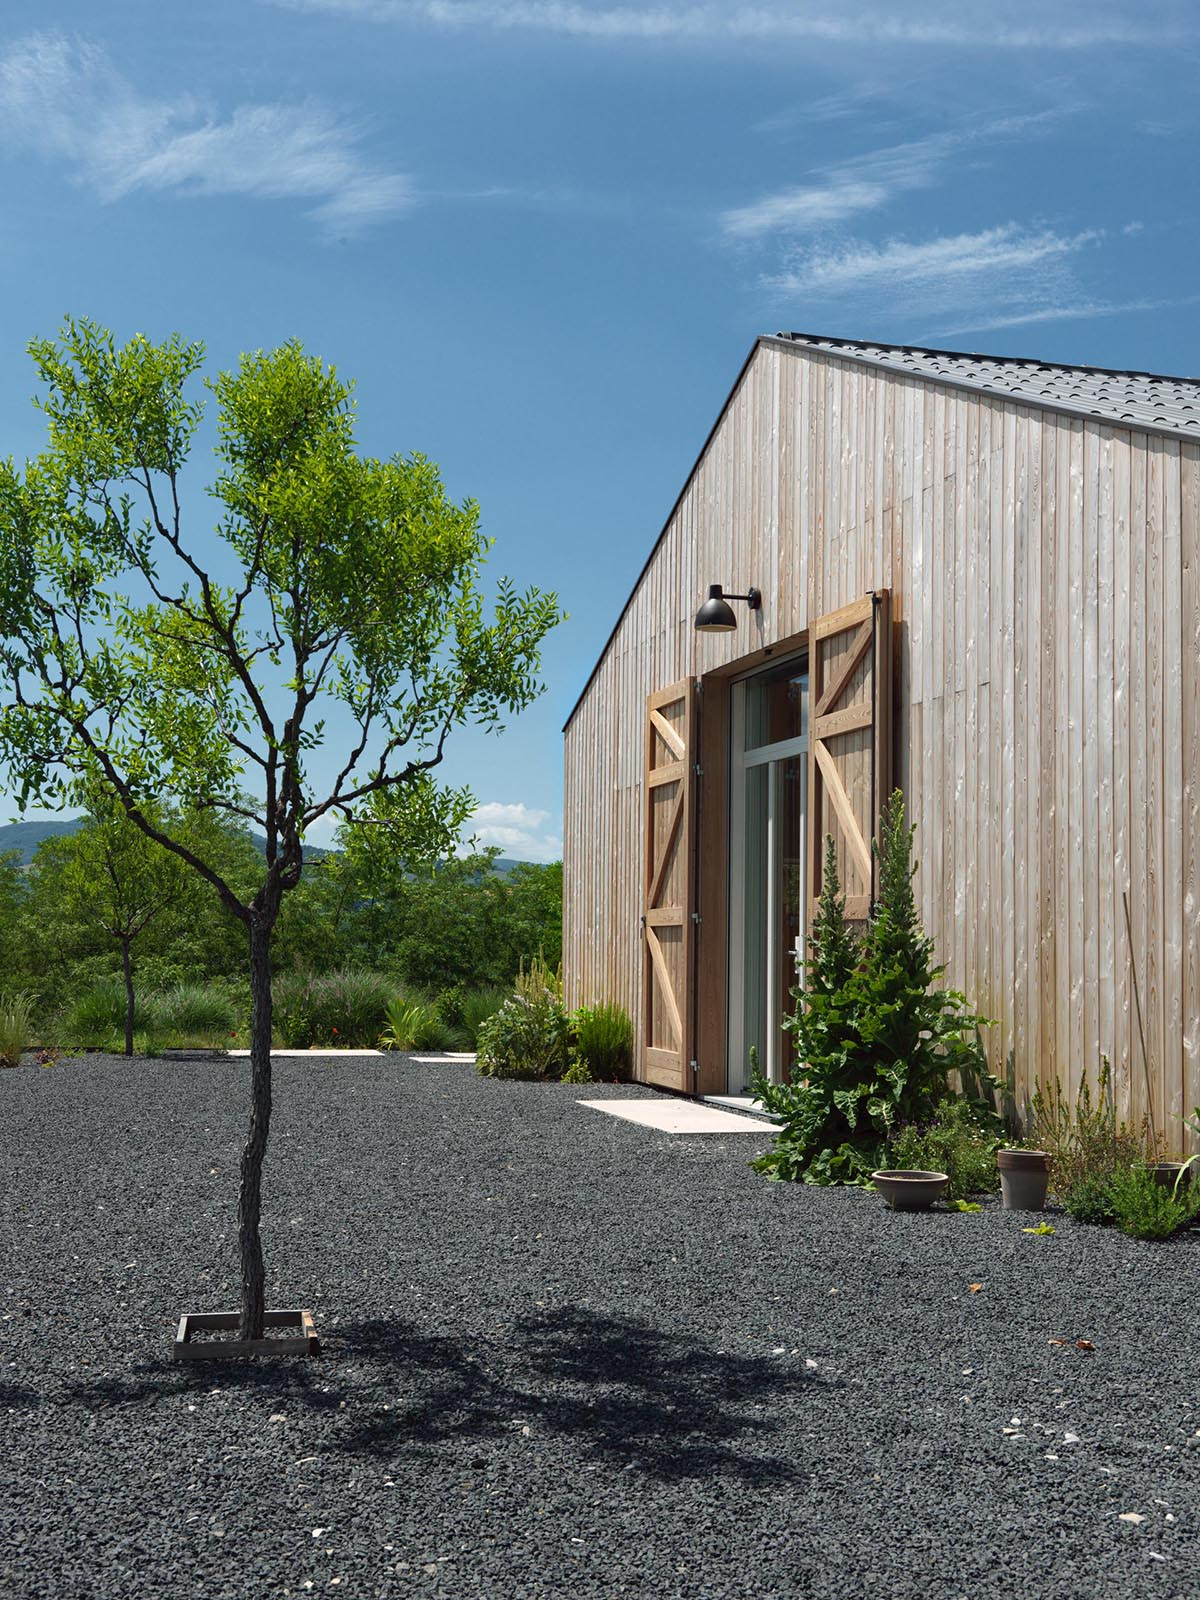 The exterior of this modern farmhouse is clad with natural larch wood.